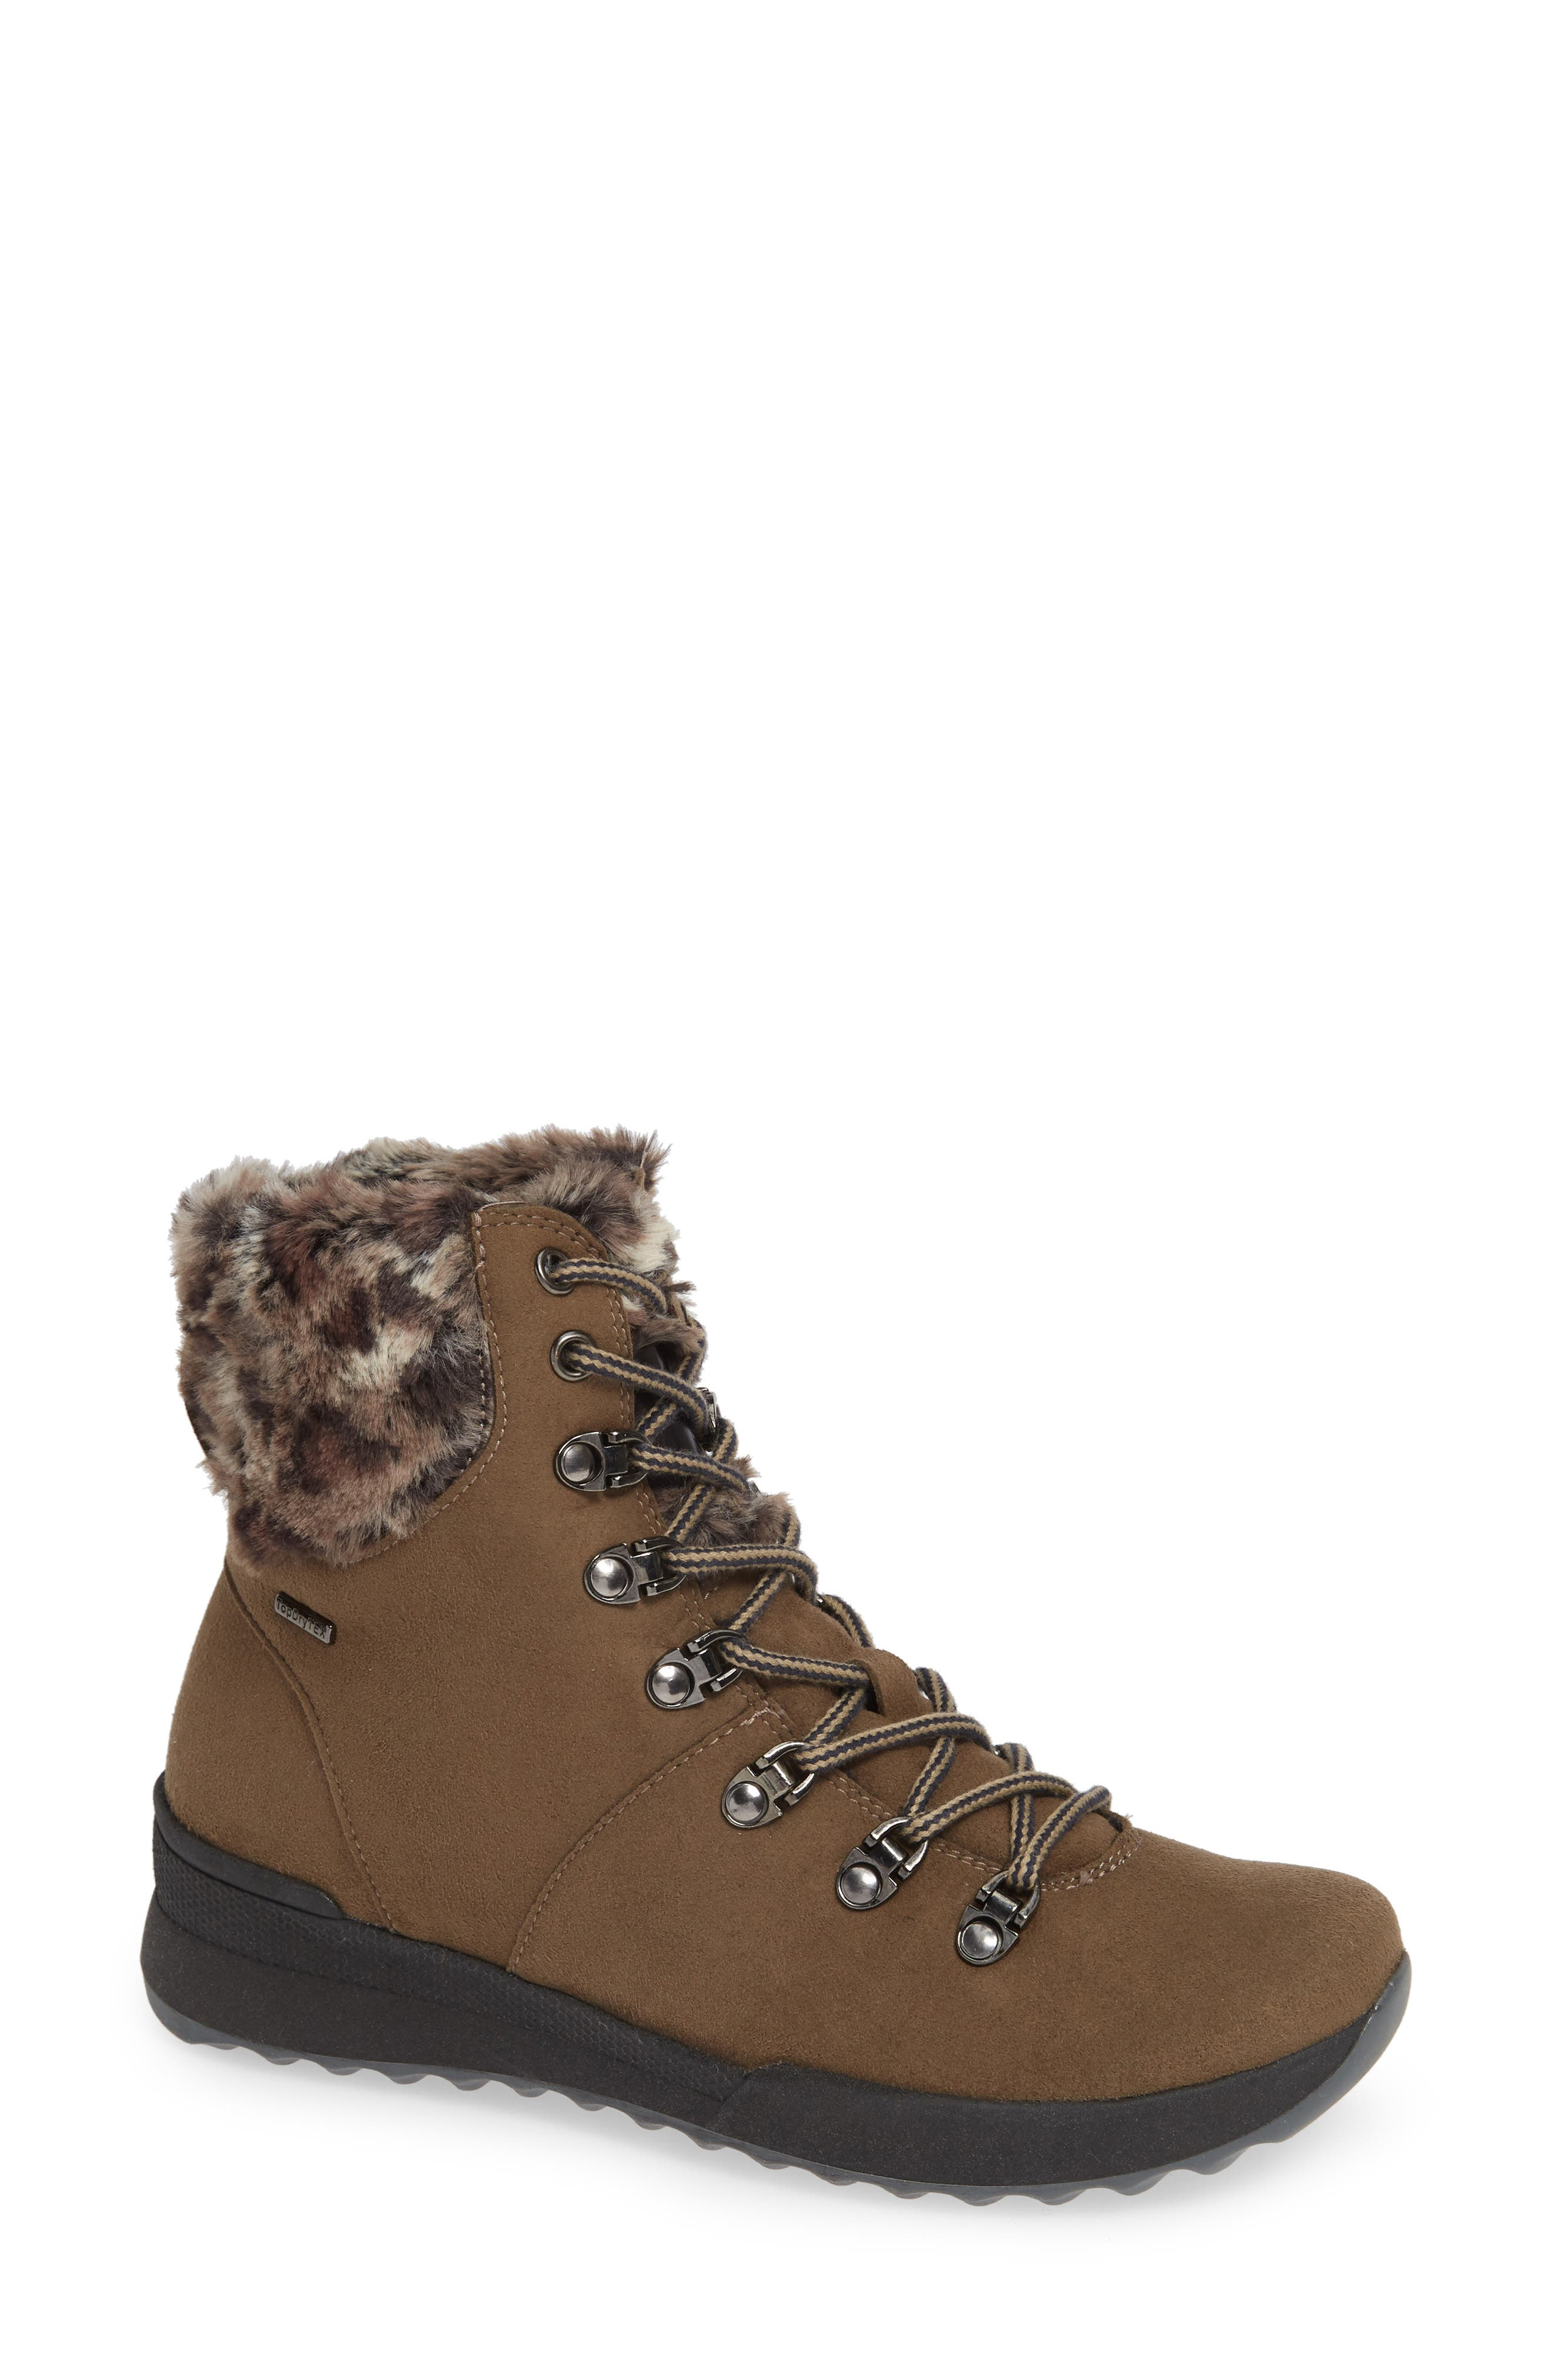 Victoria 17 Bootie,                         Main,                         color, BROWN LEATHER